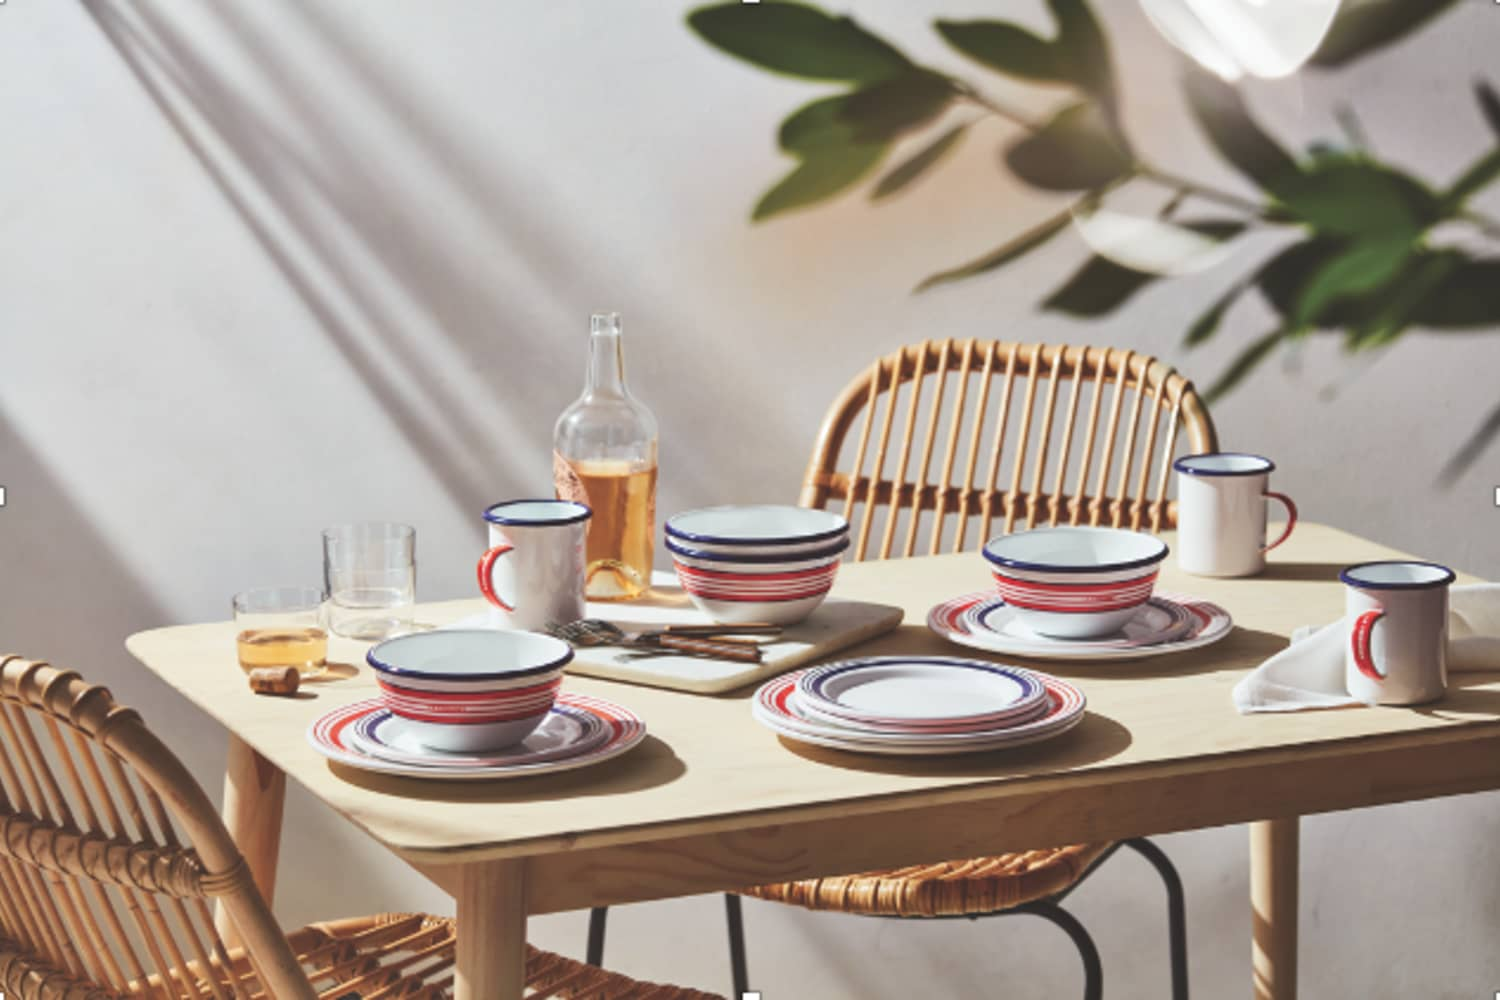 Le Creuset's Unbreakable Enamelware Collection Is Perfect For Outdoor Dining — and on Major Sale